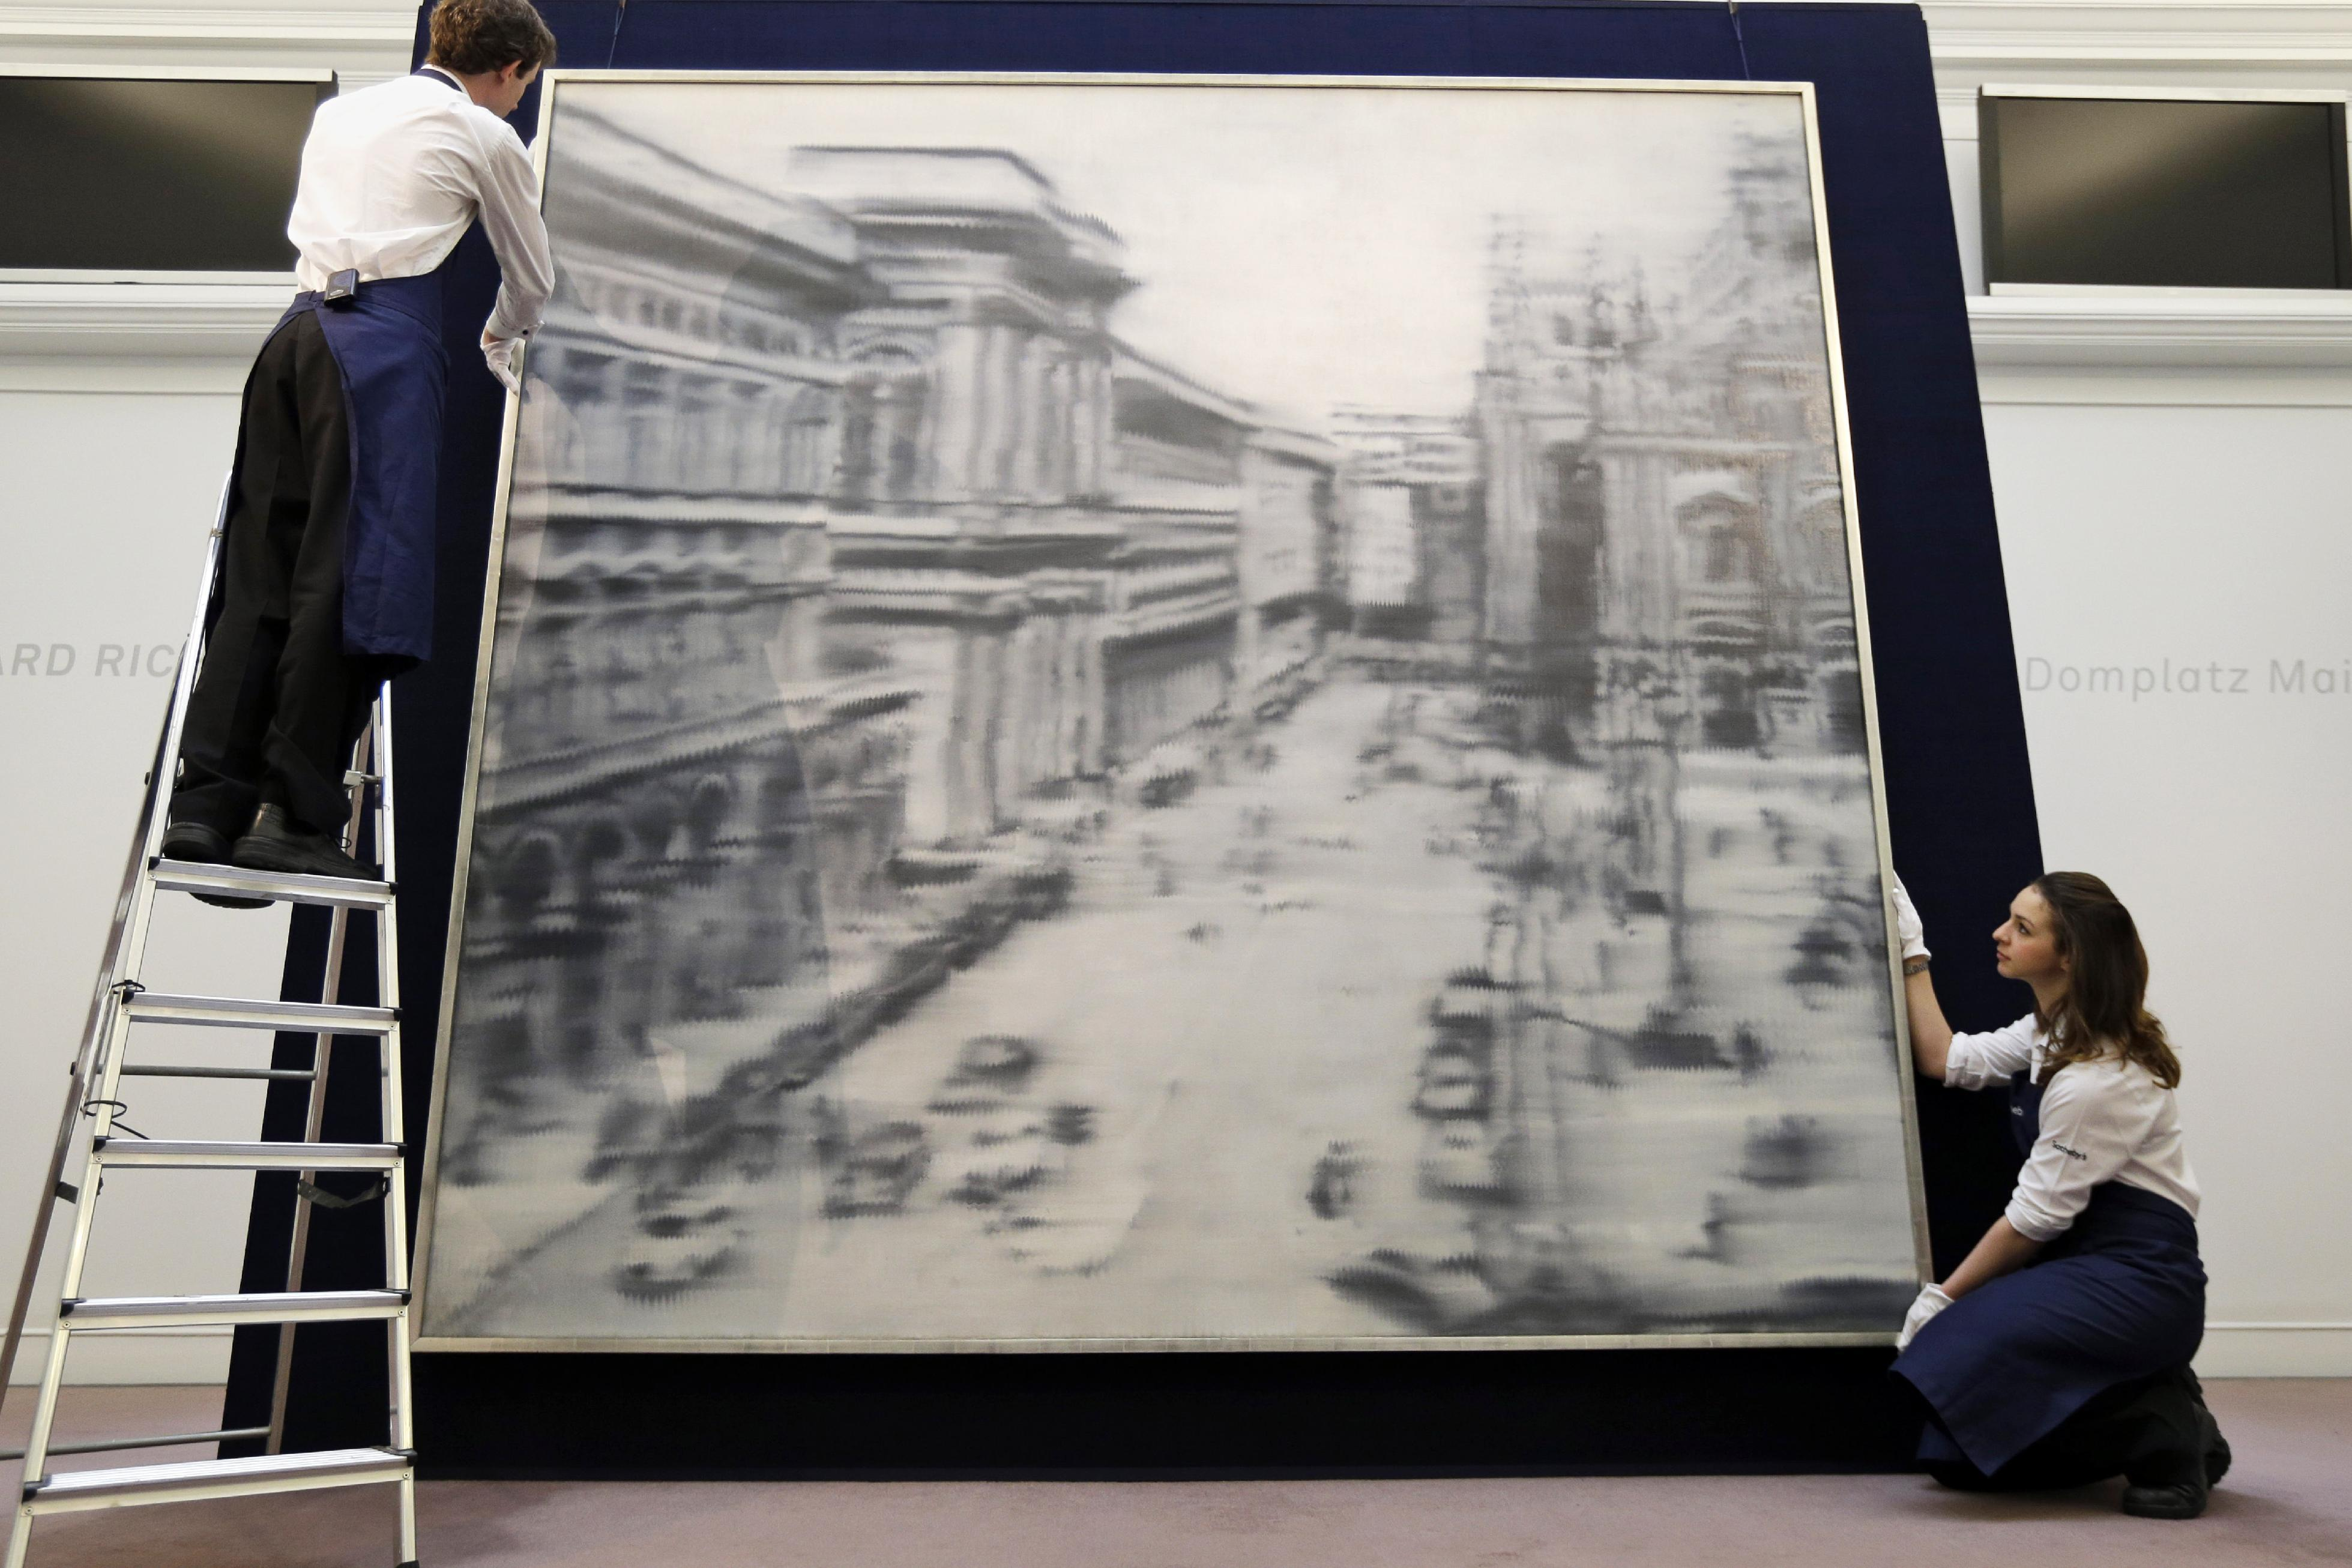 Richter painting sells for $37 million in NYC